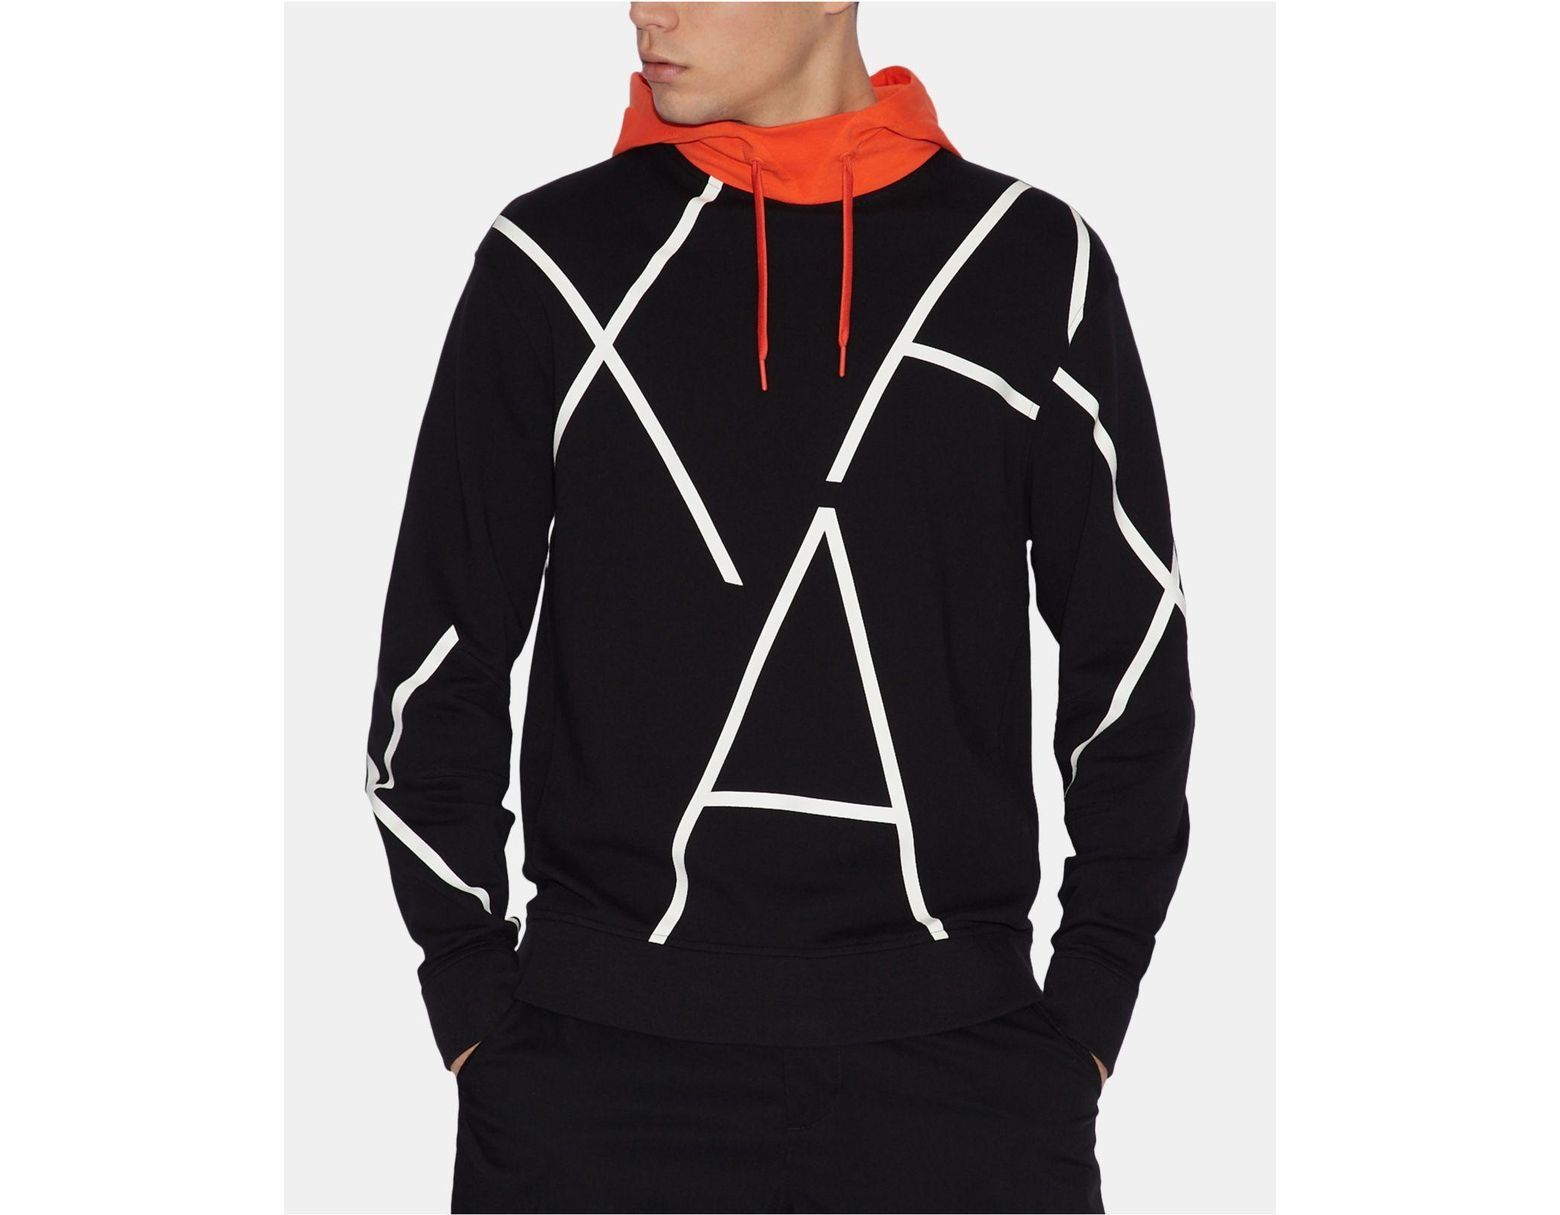 319f589ff1fe51 Armani Exchange Logo Hoodie in Black for Men - Lyst